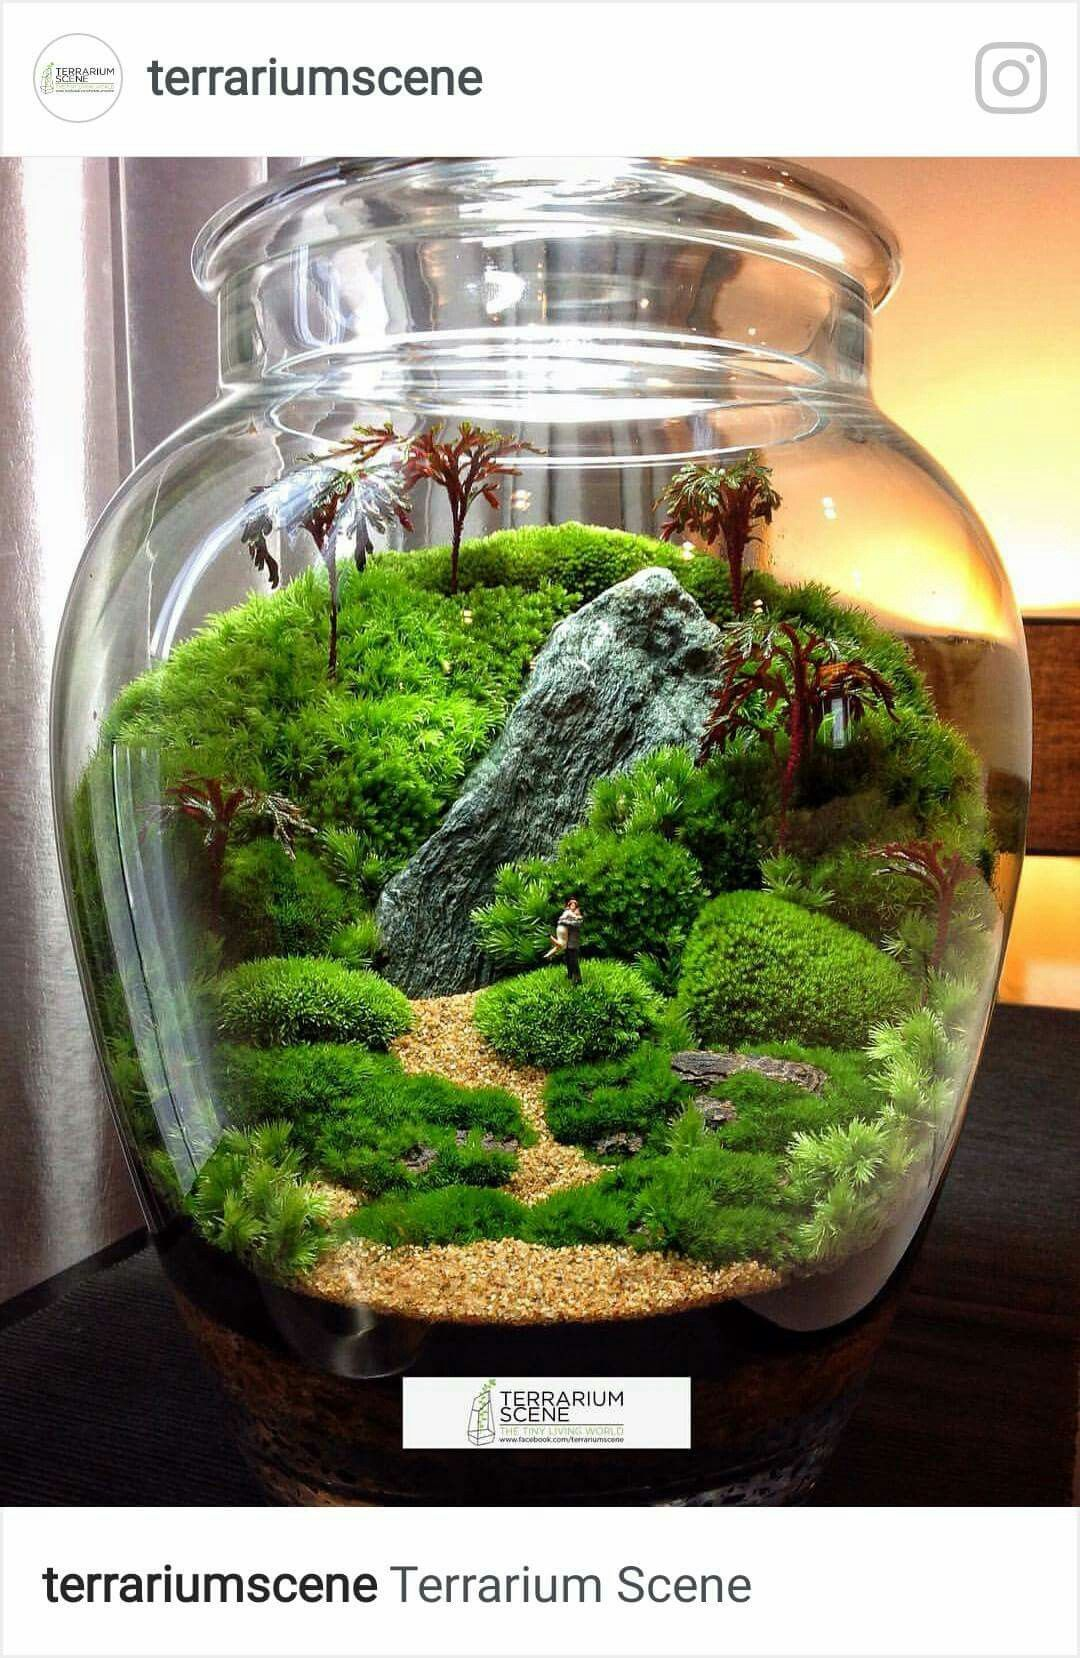 best dreams in a jar images on pinterest in fish tanks